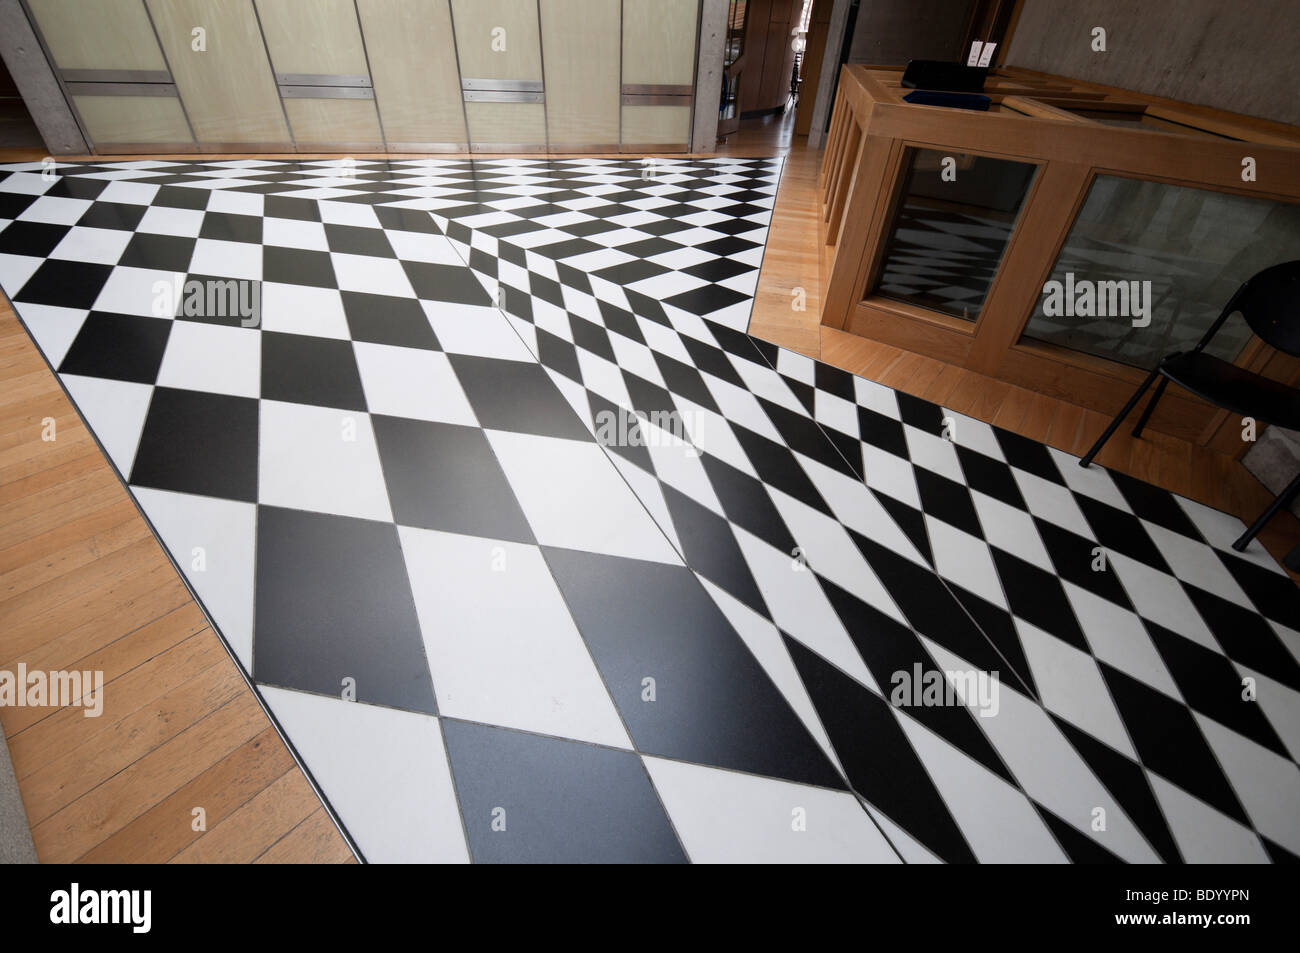 Interiors of the holyrood parliament buildings in edinburgh interiors of the holyrood parliament buildings in edinburgh scotland floor tile pattern in the black and white corridor dailygadgetfo Images